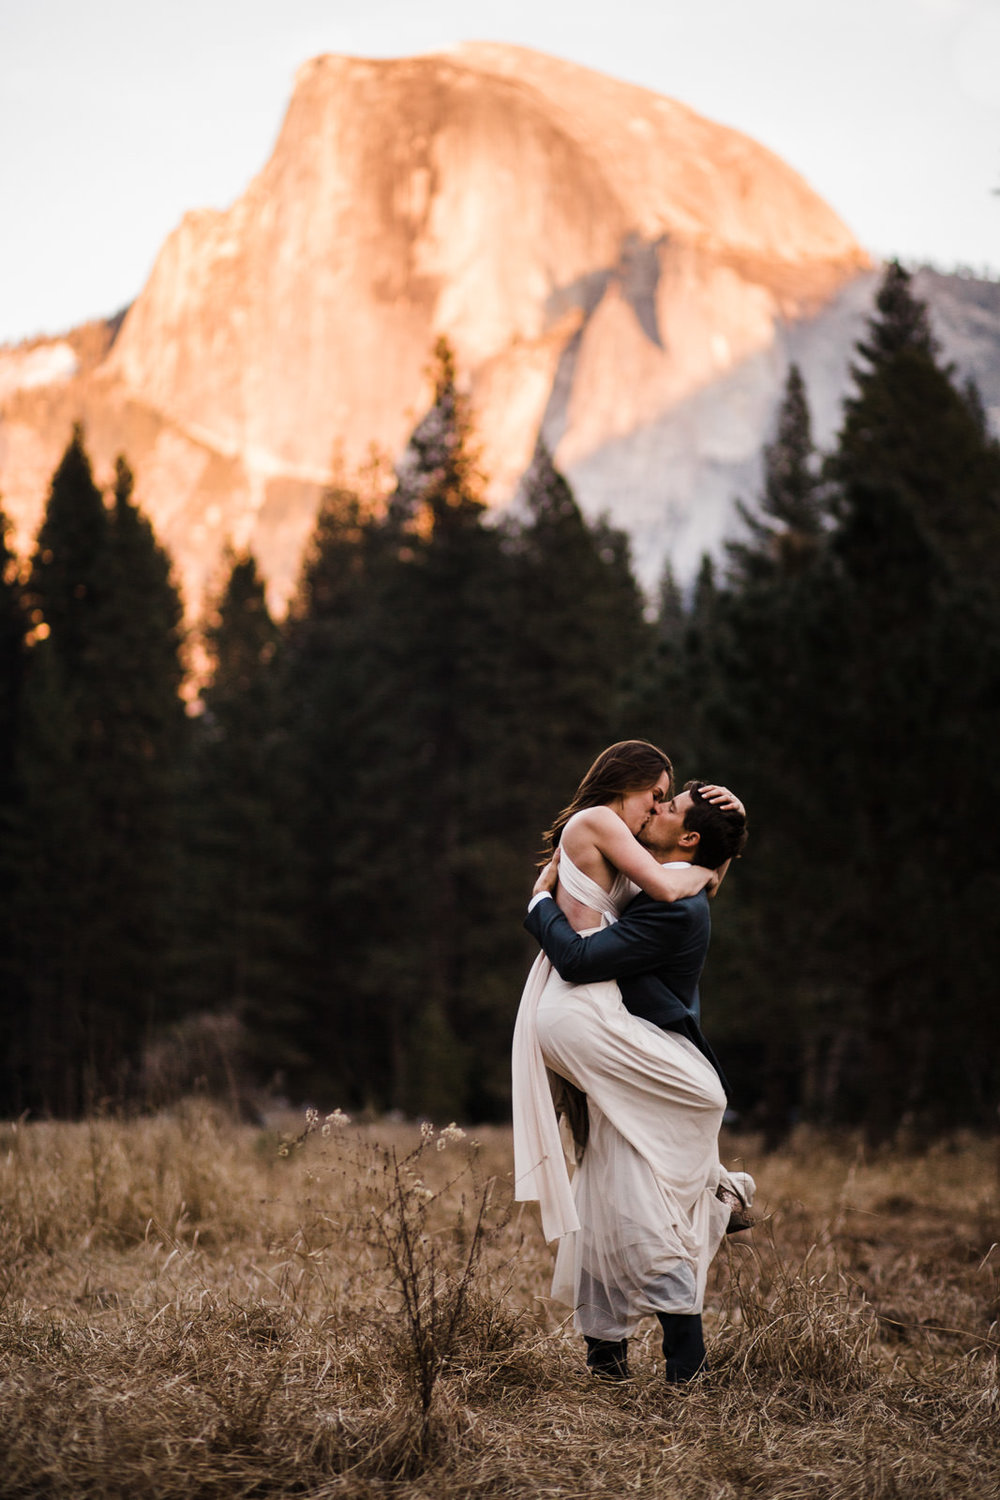 winter-elopement-california-intimate-adventure-photographer-yosemite-national-park-daniela-vallant-wedding-elopement-photographer